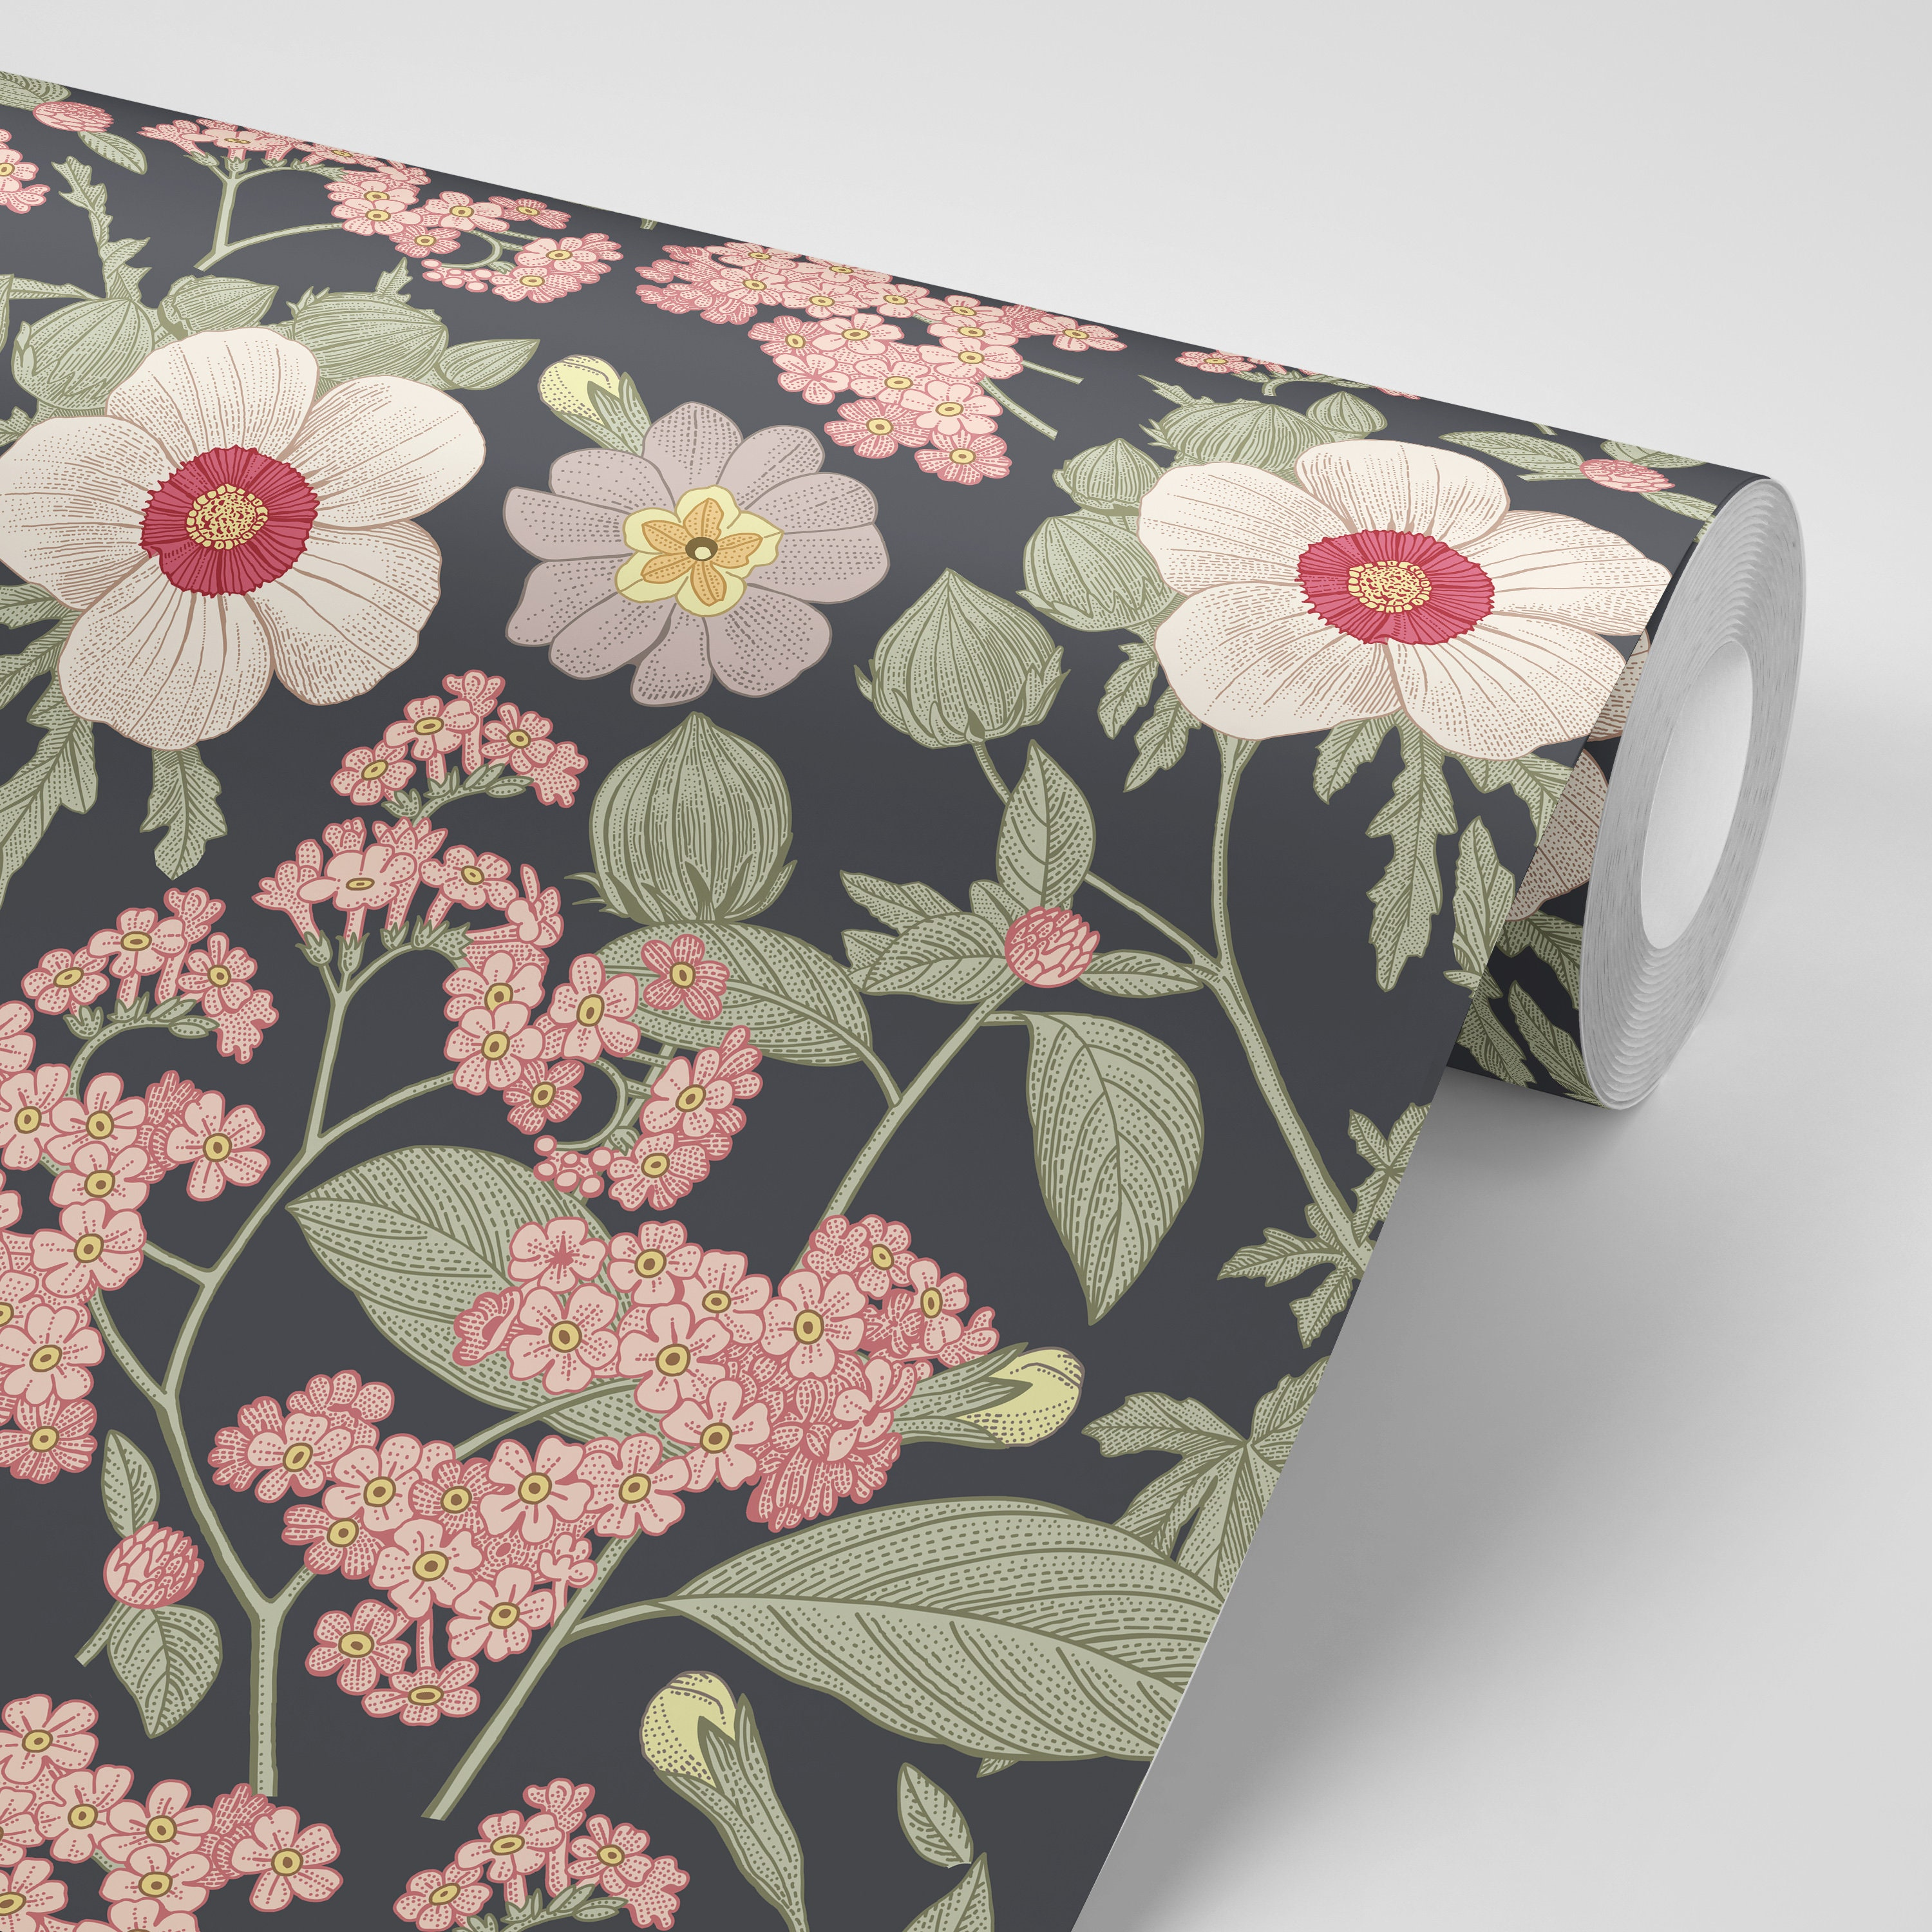 Wallpaper Floral Flowers Green Leaves On Black And Grey Floral Etsy